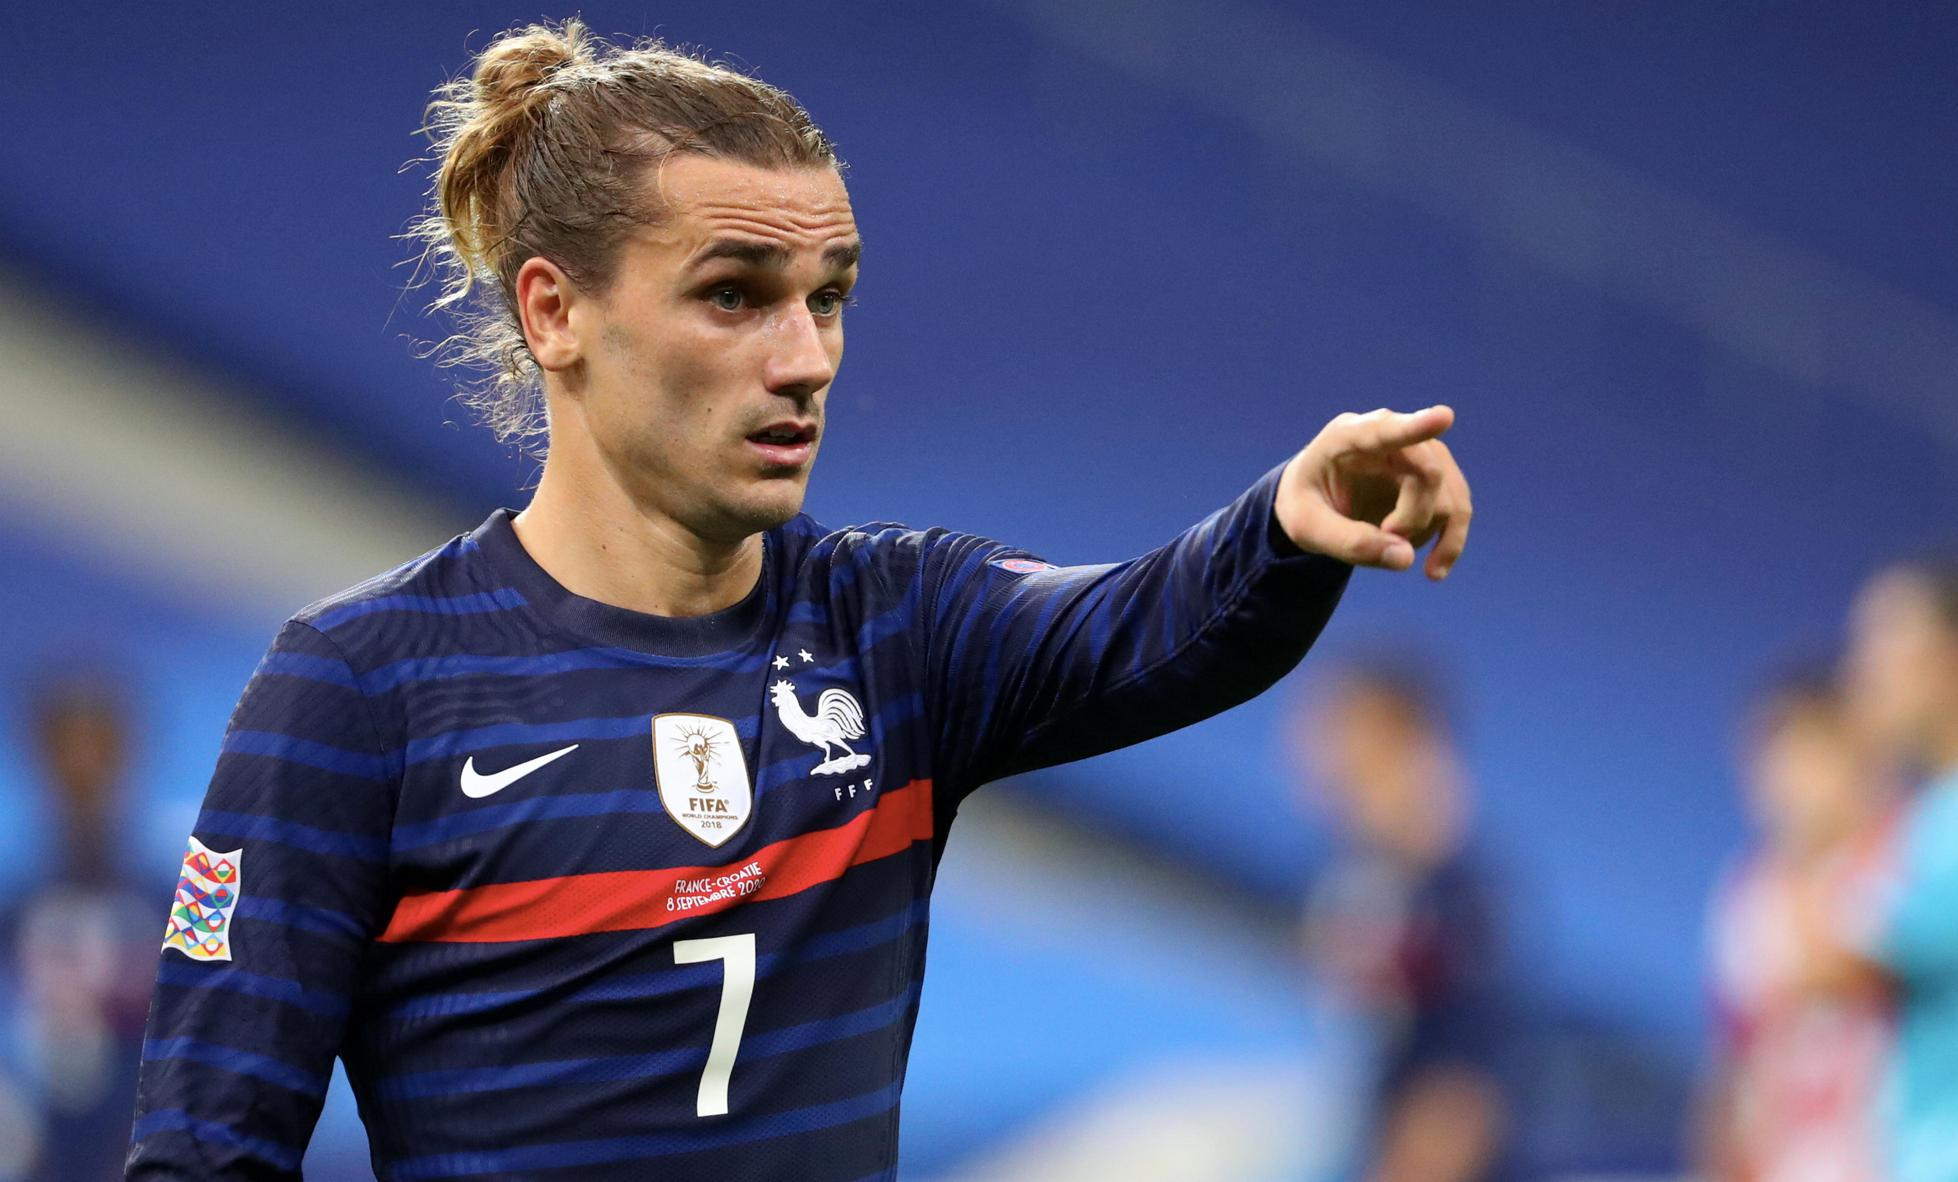 Antoine Griezmann of France reacts during the UEFA Nations League group stage match against Croatia.